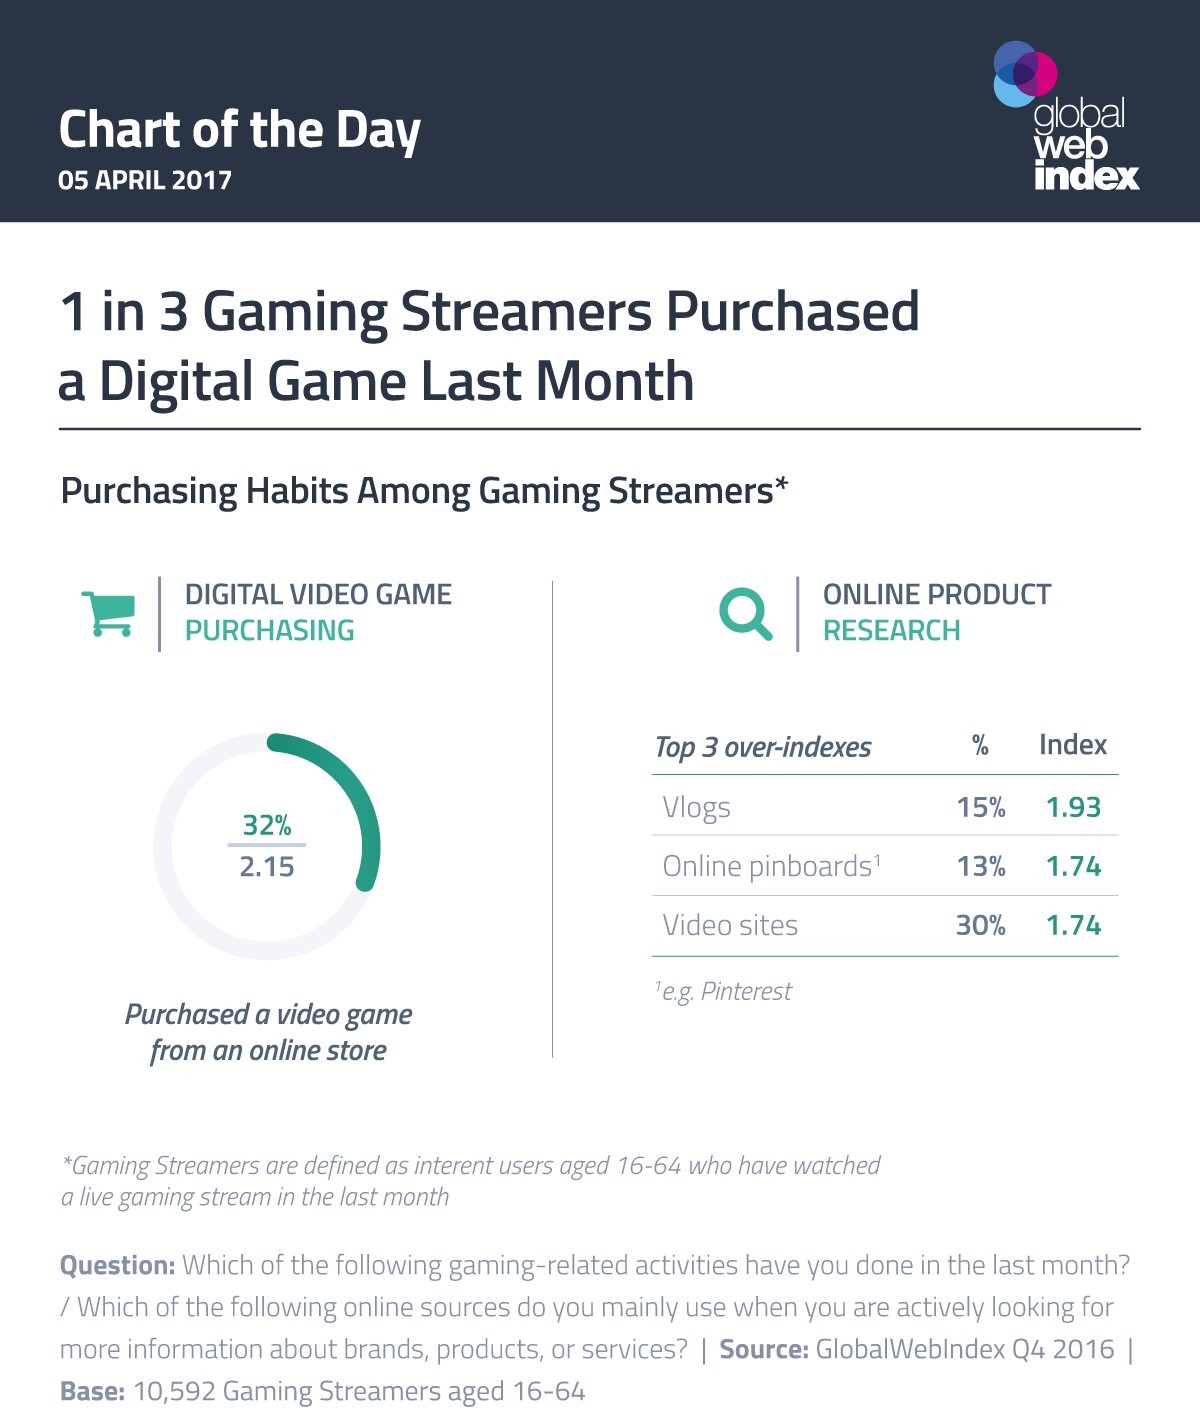 1 in 3 Gaming Viewers Purchased a Digital Game Last Month